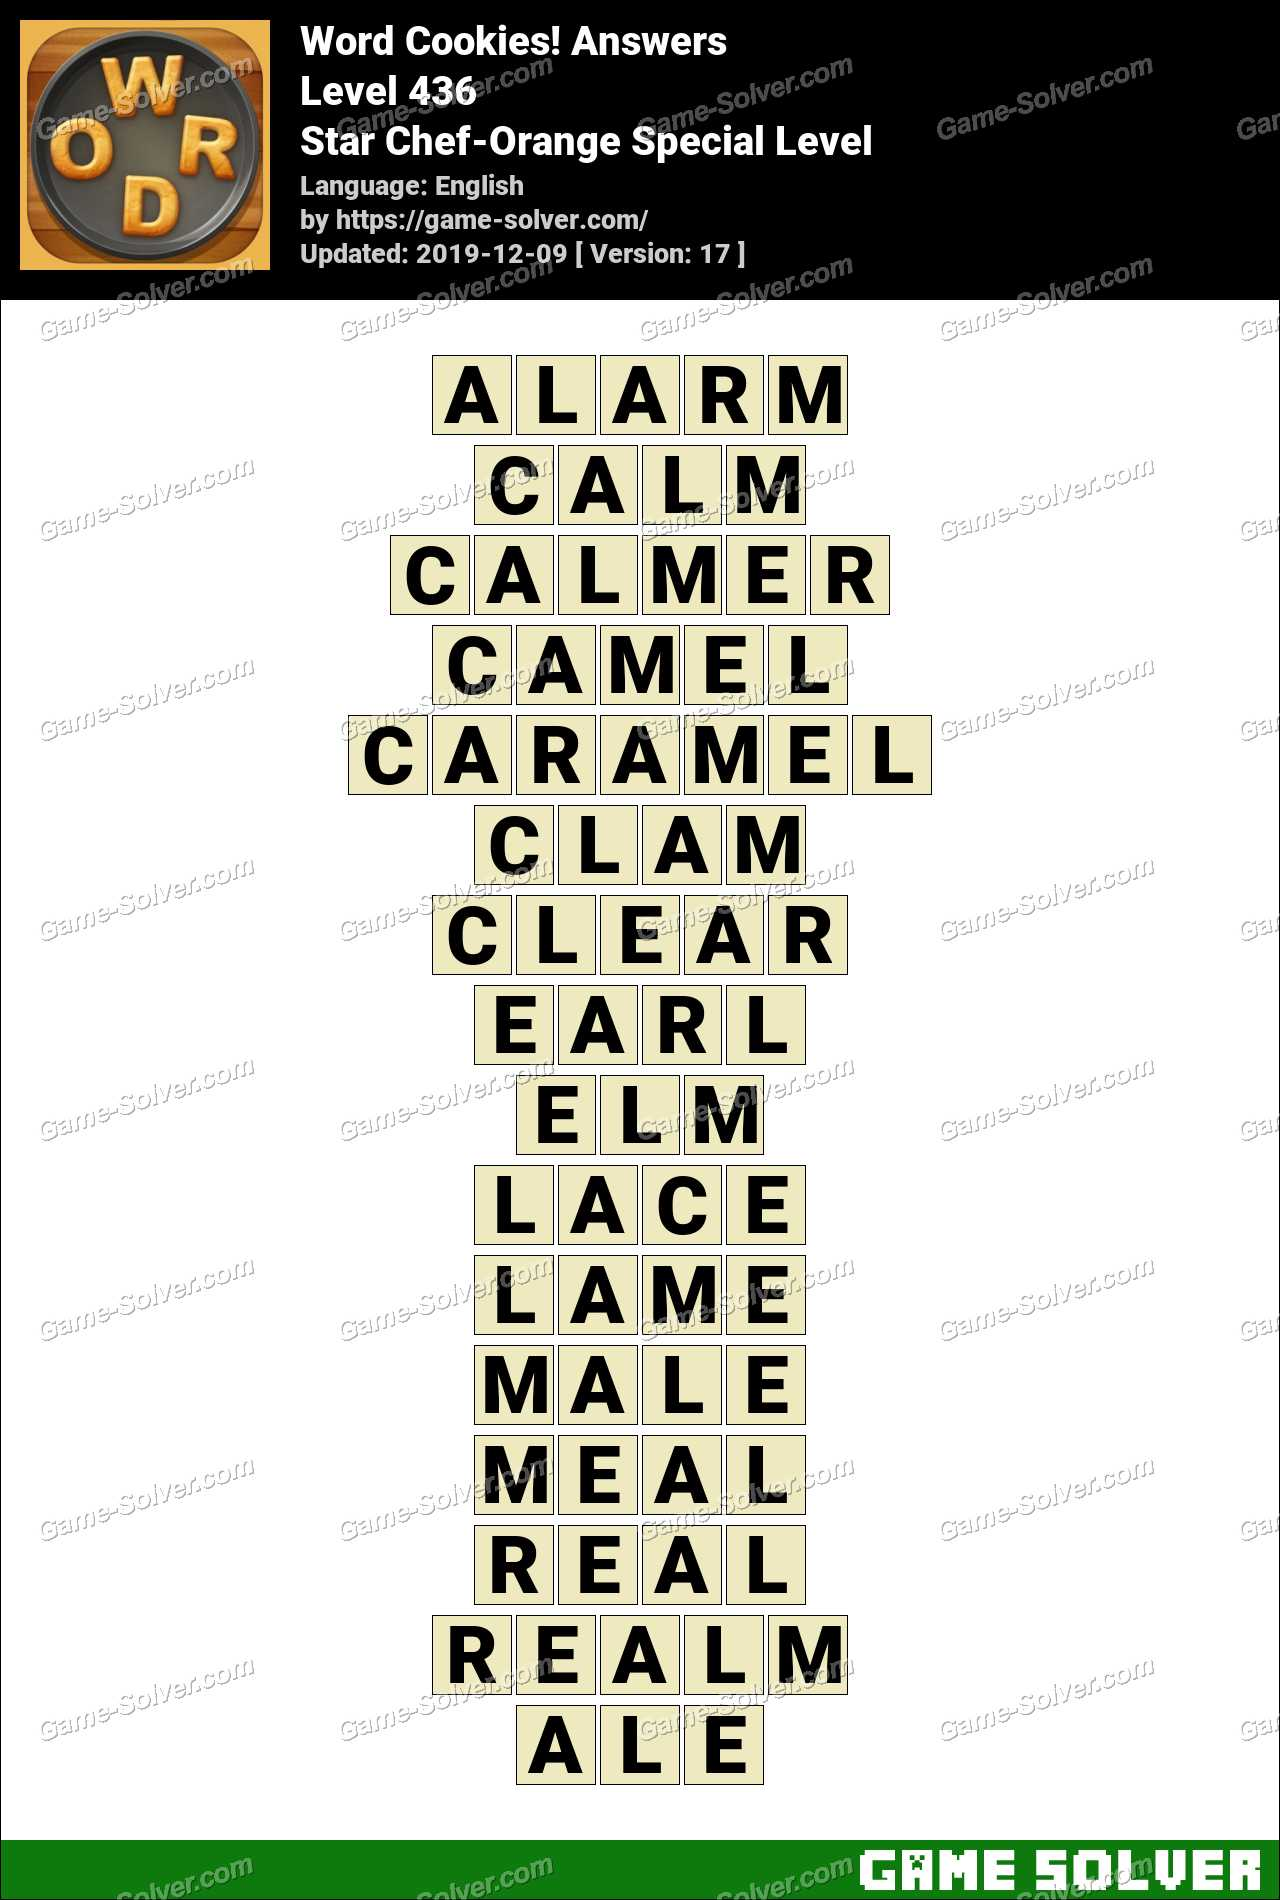 Word Cookies Star Chef-Orange Special Level Answers